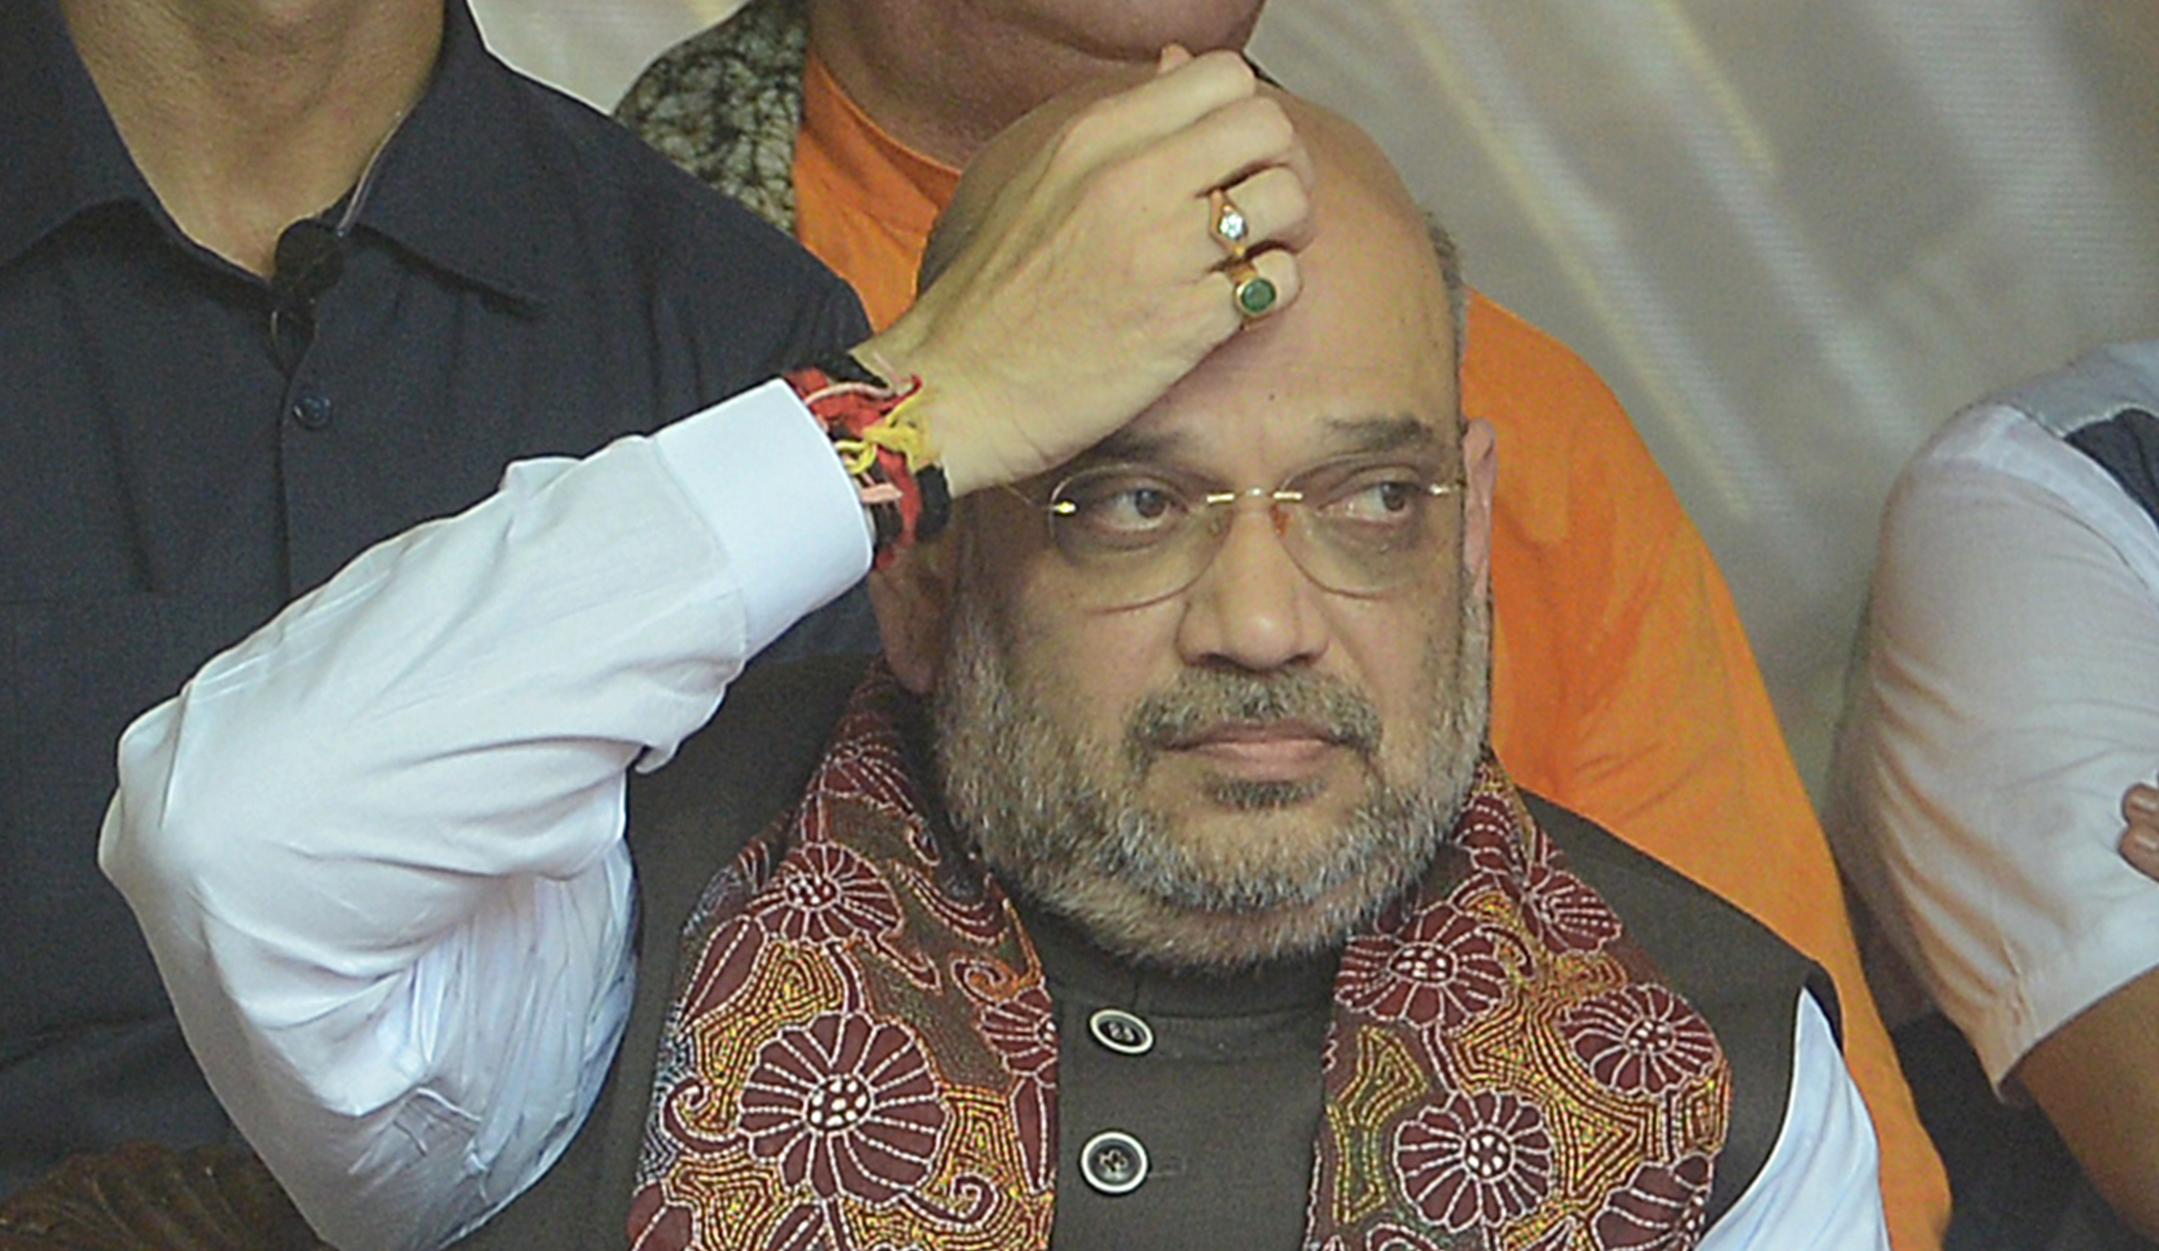 Amit Shah (in picture) is widely credited within the BJP for challenging the Opposition and conquering one state after another in the last four years.